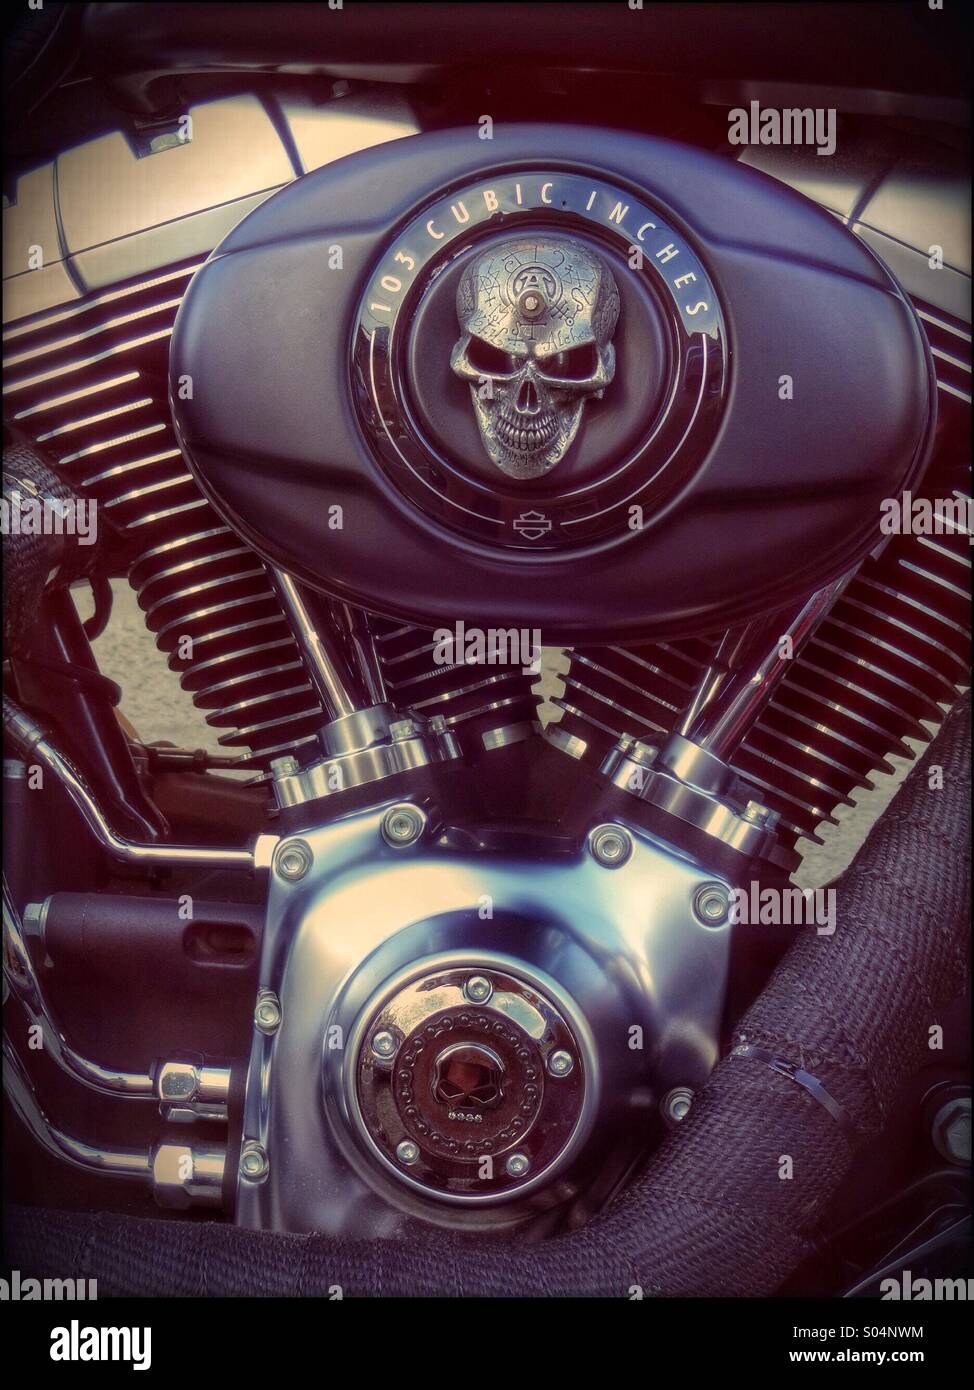 103 cubic inches engine on a motor bike, 2 cylinders and amazing noise - Stock Image